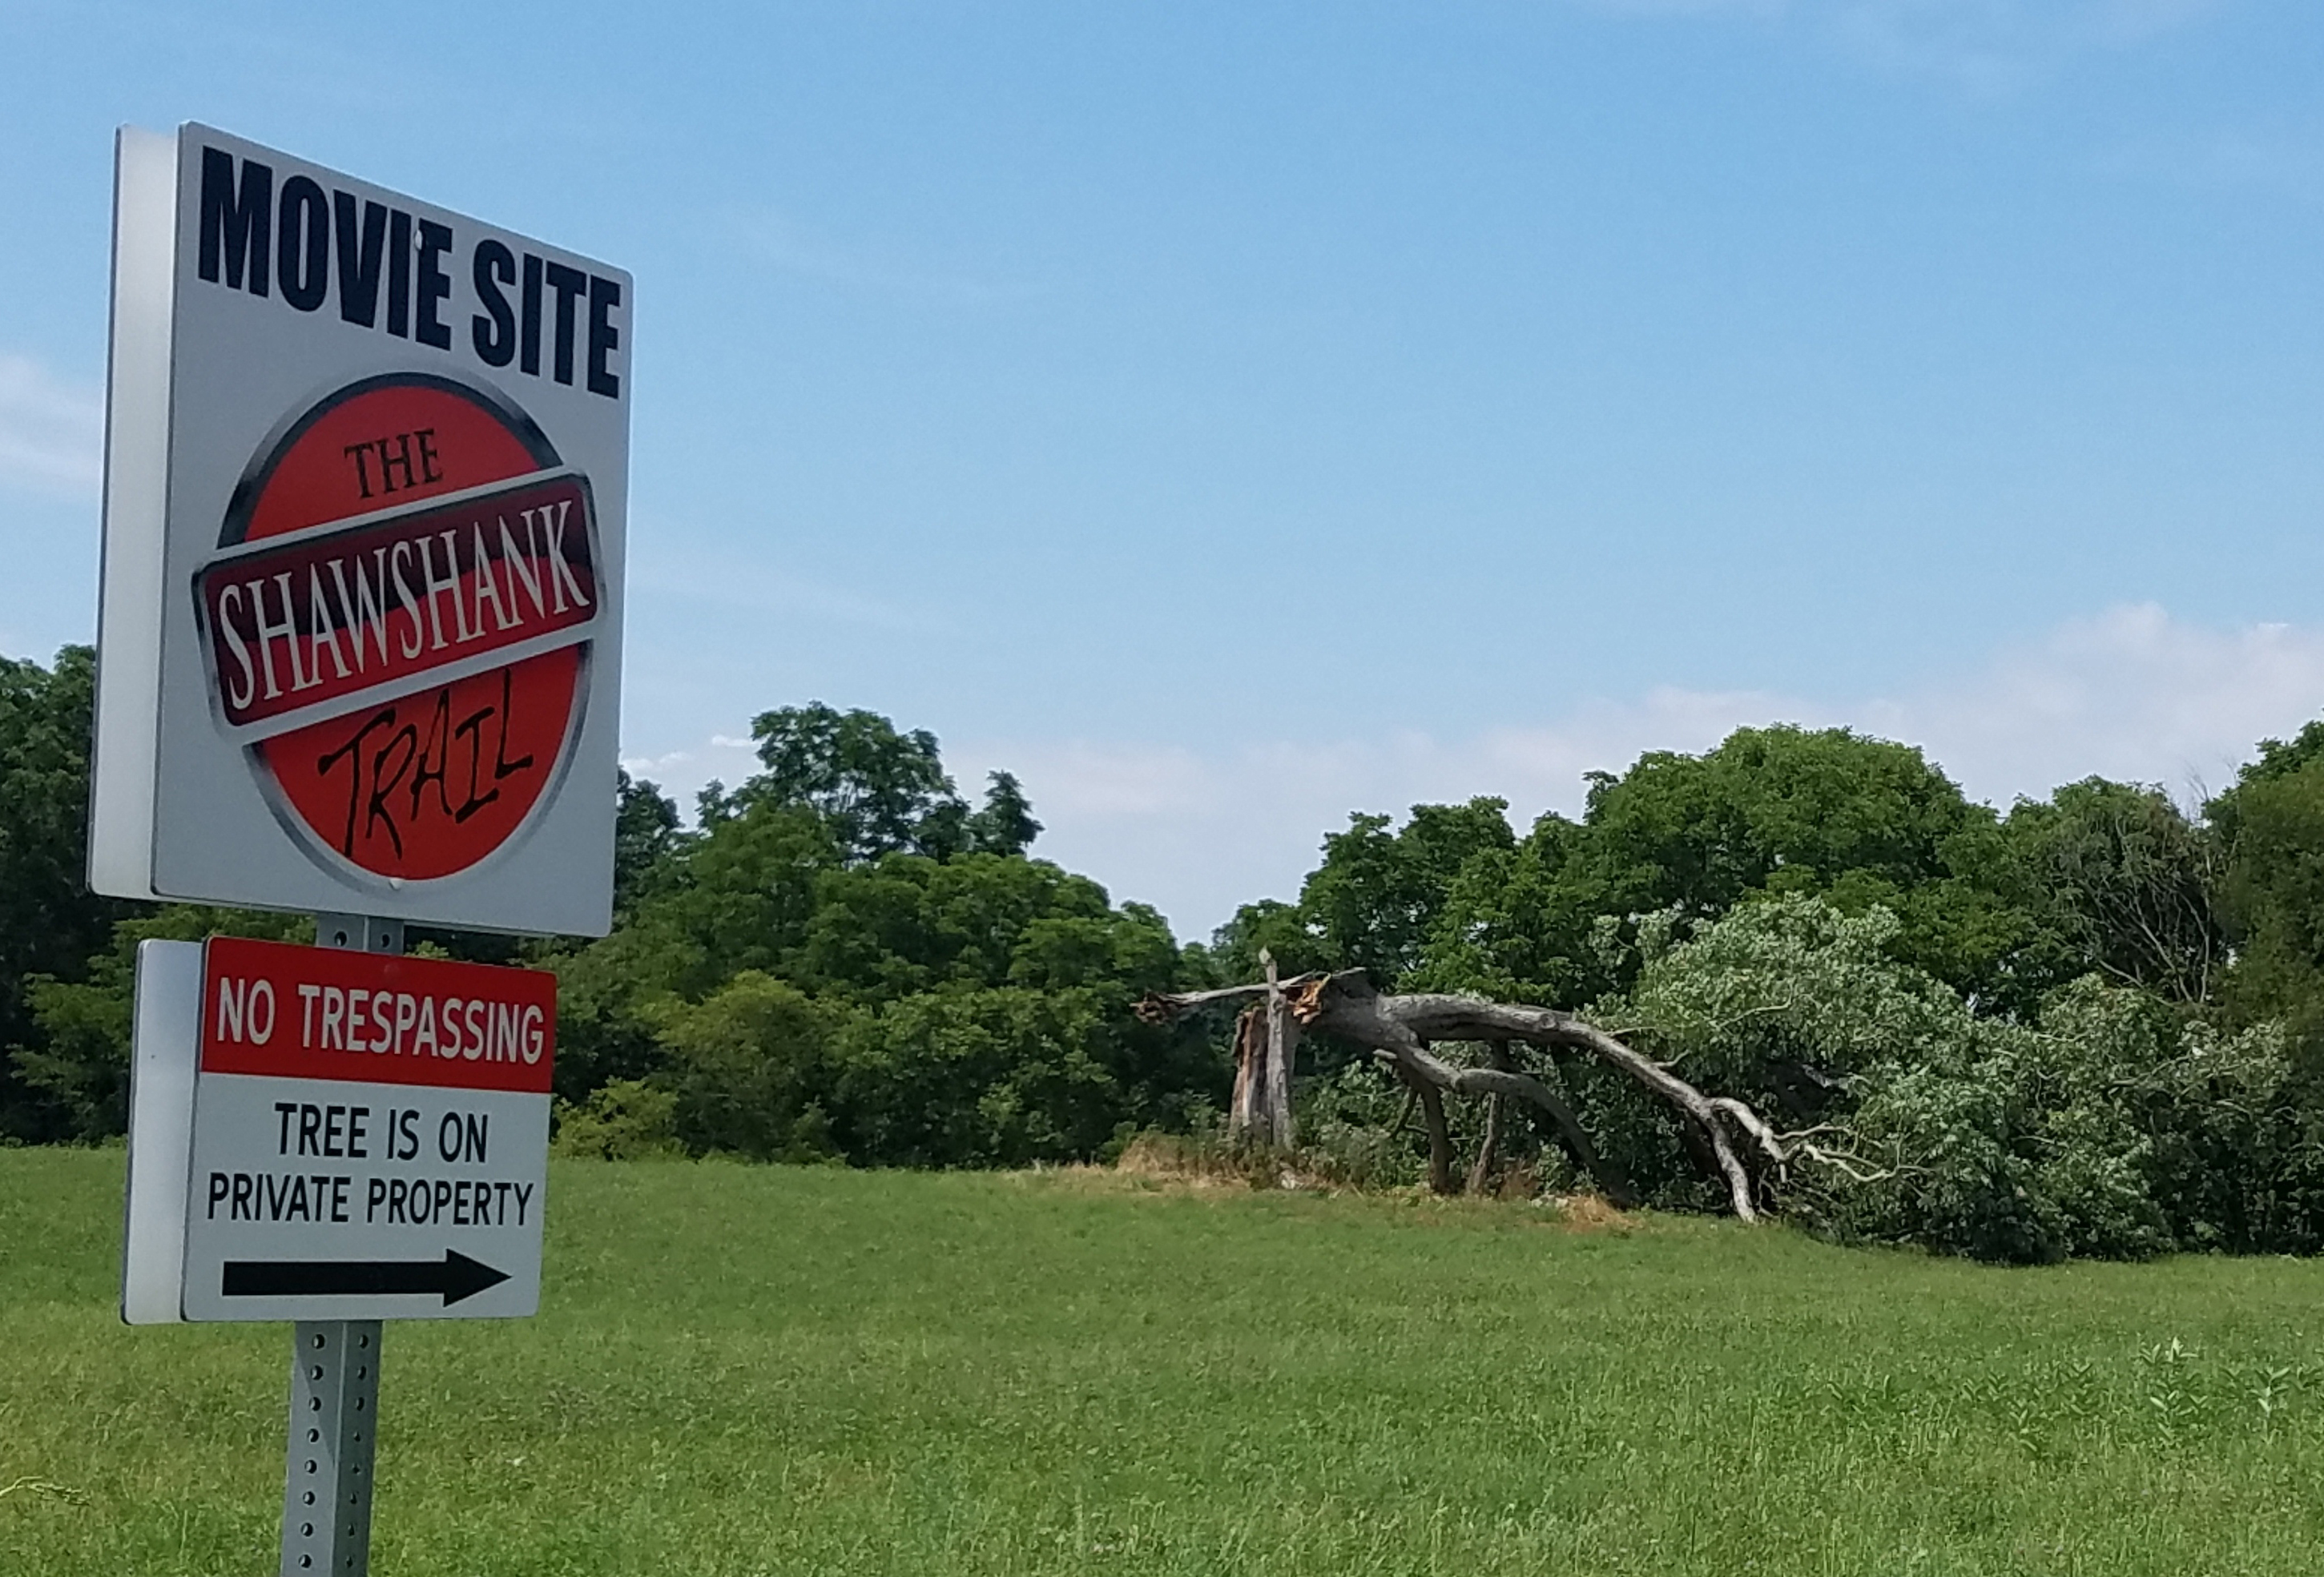 "A fallen oak tree made popular by its role in the movie ""The Shawshank Redemption,"" in Ohio, July 22, 2016."